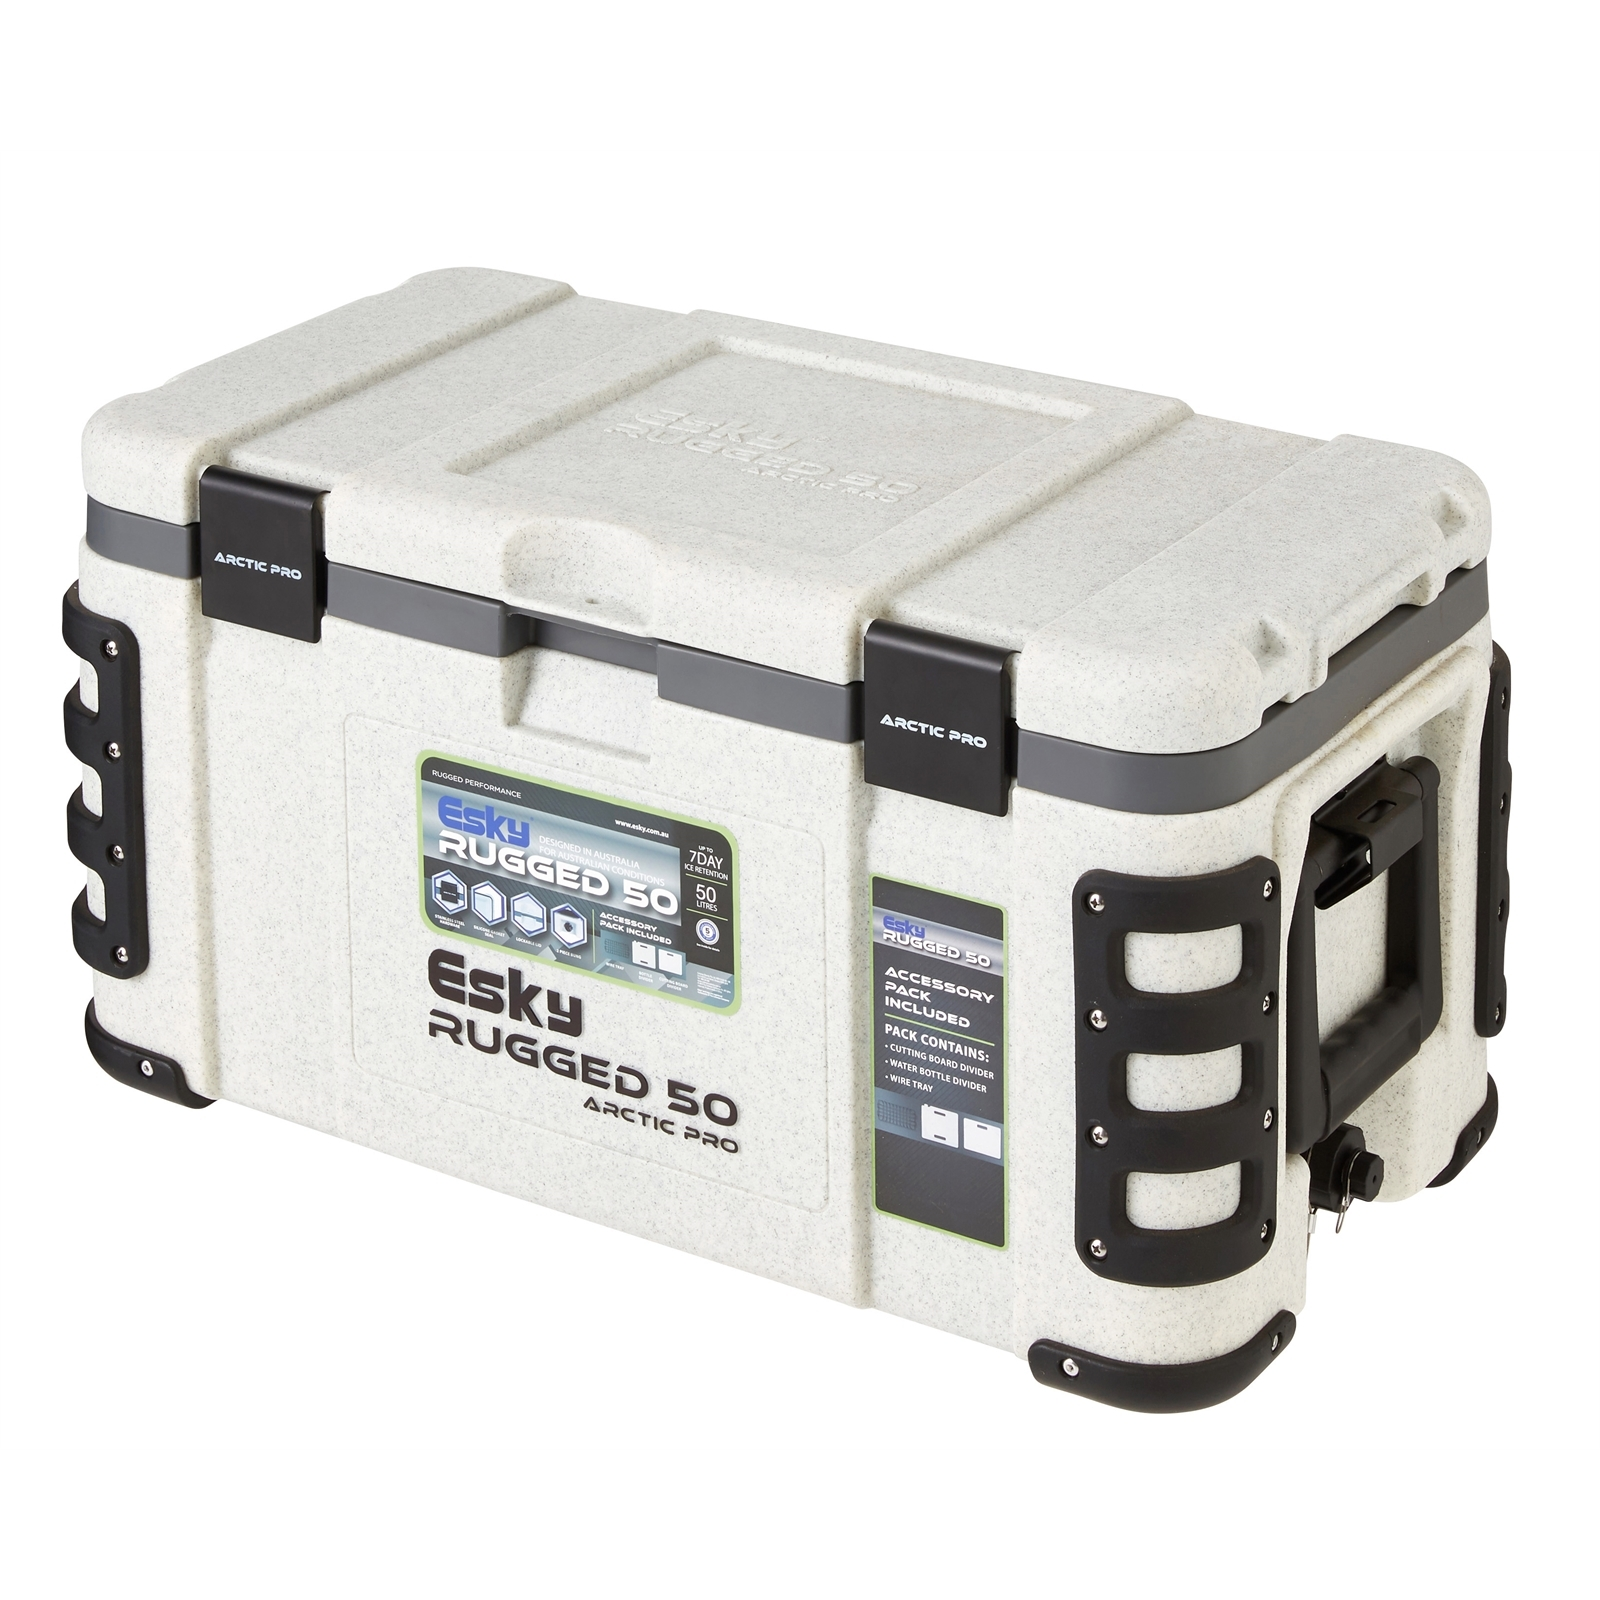 Esky 50L Arctic Pro Rugged Cooler With Accessory Pack